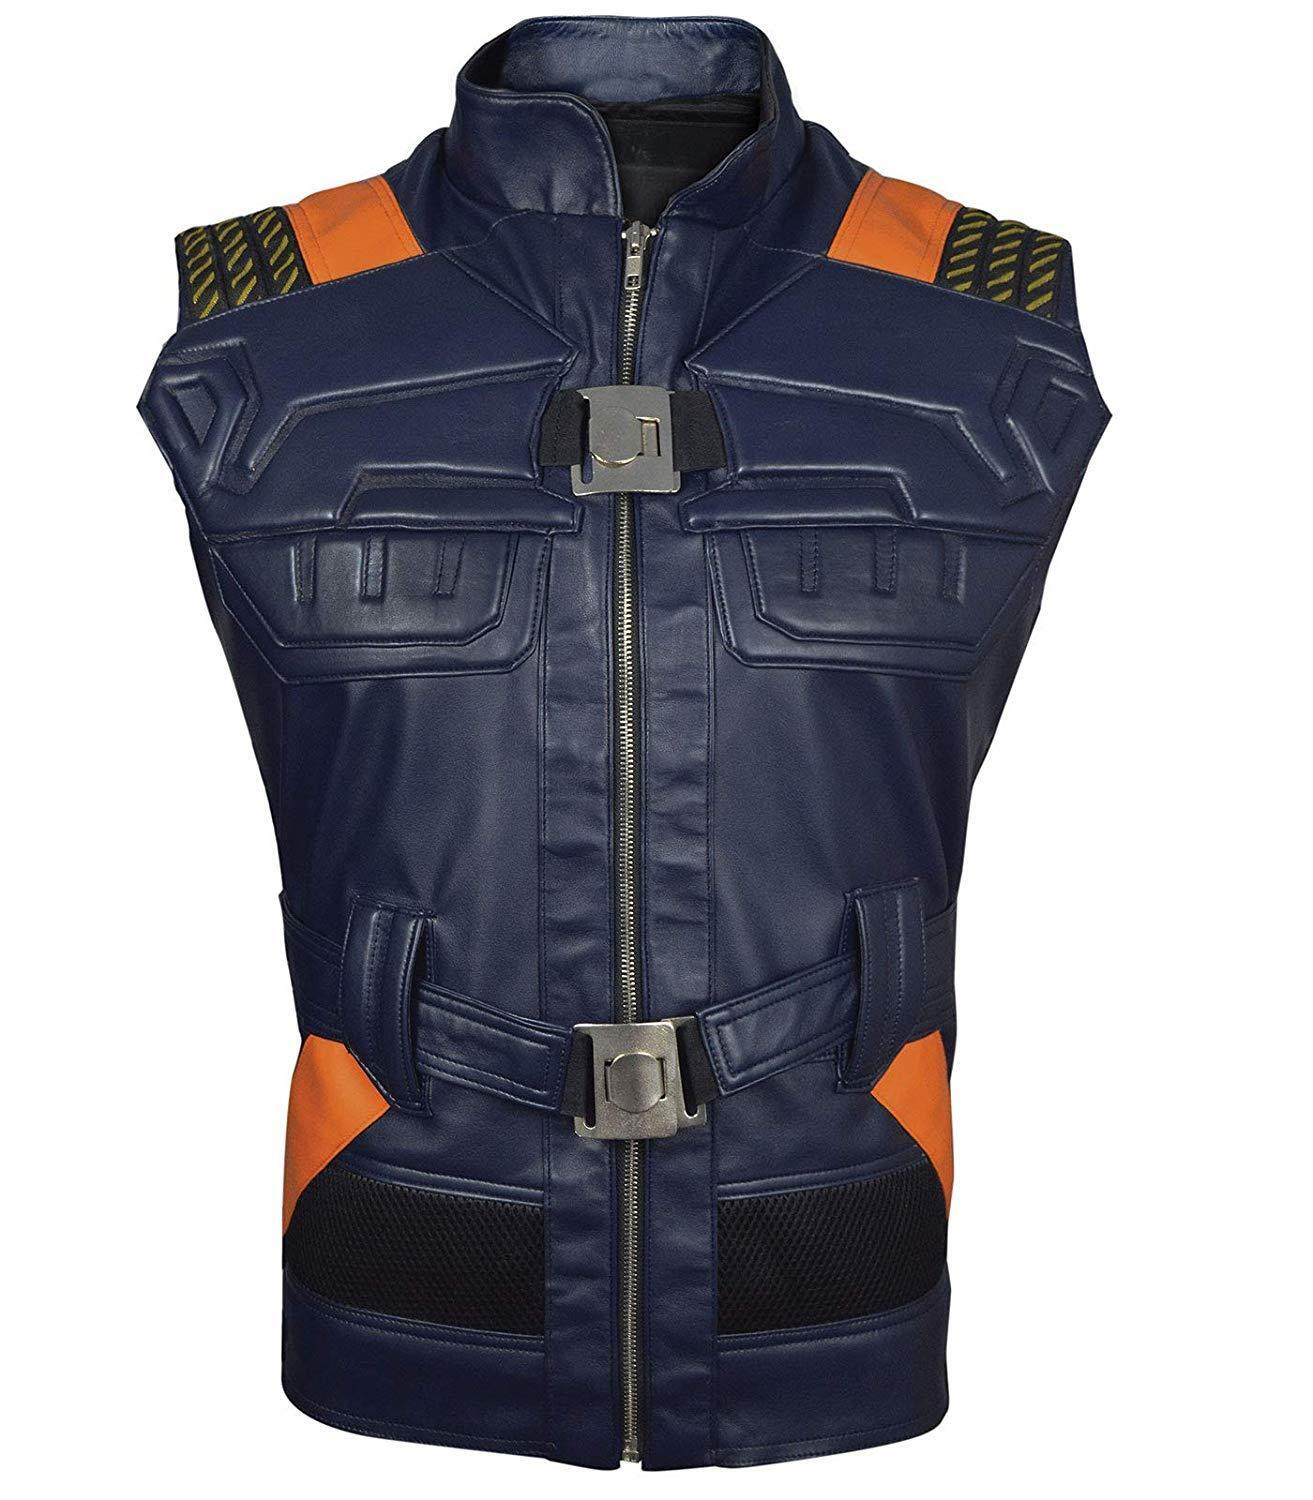 NEW Erik Killmonger Leather Vest-MIcael B Jordan Panther Vest, All Sizes